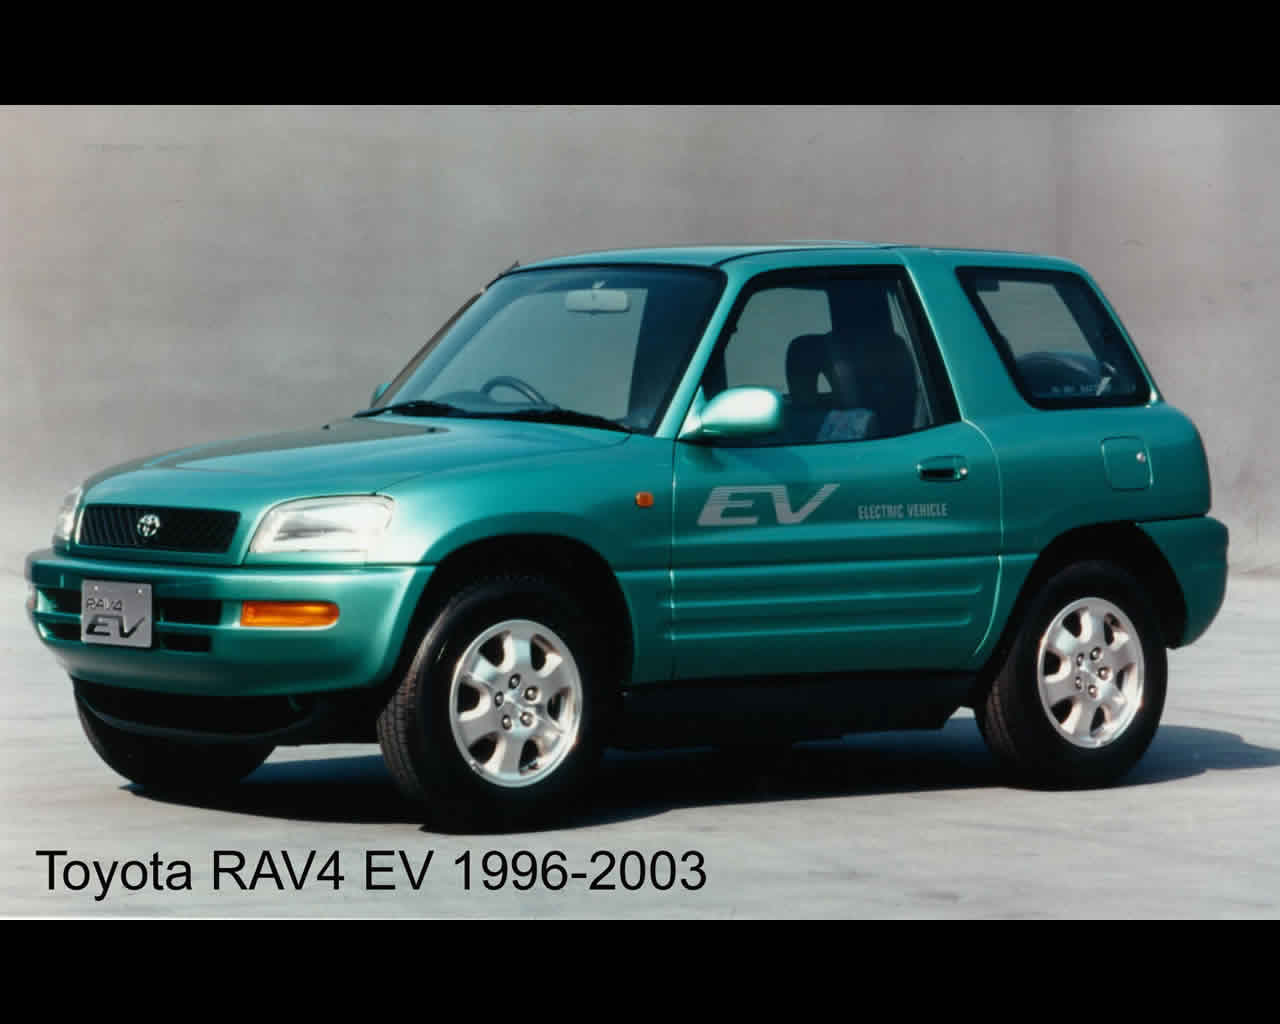 Toyota rav 4 electric car 2011 toyota rav 4 electric car 2011 and 1996 green rav4 sciox Choice Image